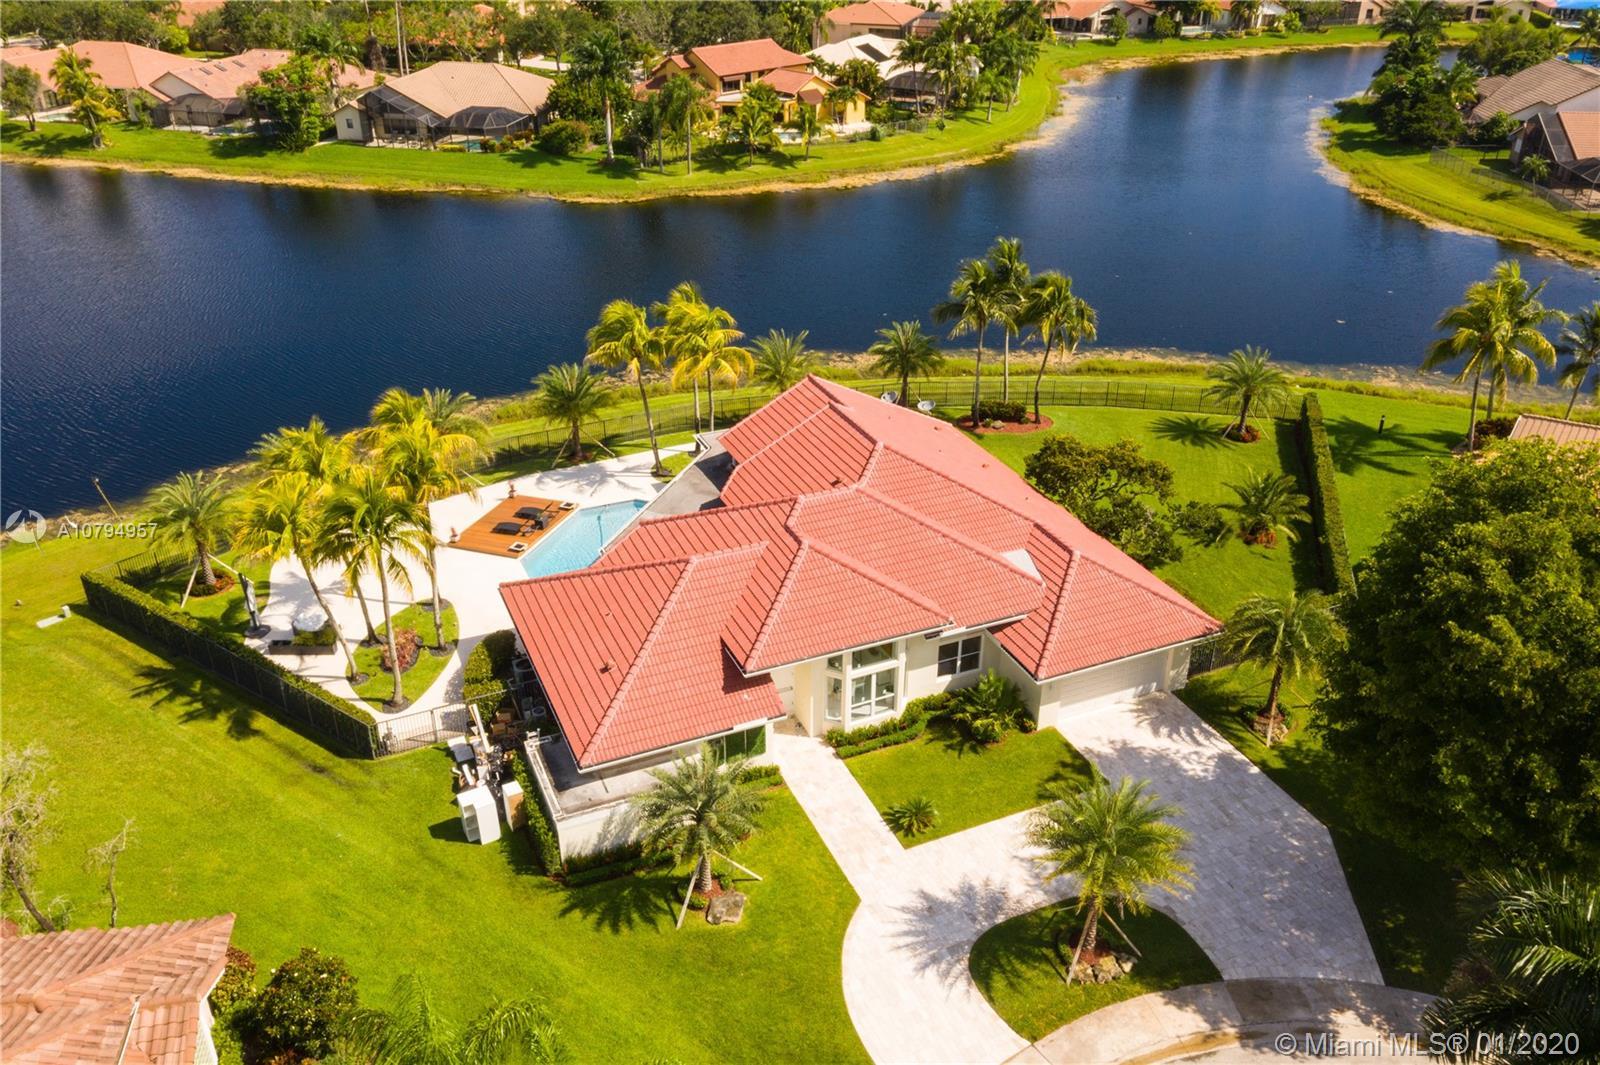 A BEAUTIFUL HOME FOR SALE IN TEQUESTA!! Come fall in love with this stunning ONE STORY, 4 BEDS 4  baths  home with a foyer entrance and 2 CARS GARAGE plus  circular drive. NEW  ROOF, NEW  APPLIANCES  as well as a large kitchen with an island modern layout. In addition, there is a beautiful FENCED yard  FRUIT TREES ,  POOL plus AMAZING  DECK  WITH  IMMACULATE LAKE VIEW.  The Tequesta GATED Community  is next to   paradaise Peace Mound Park. A+ School. READY TO MOVE IN!!!